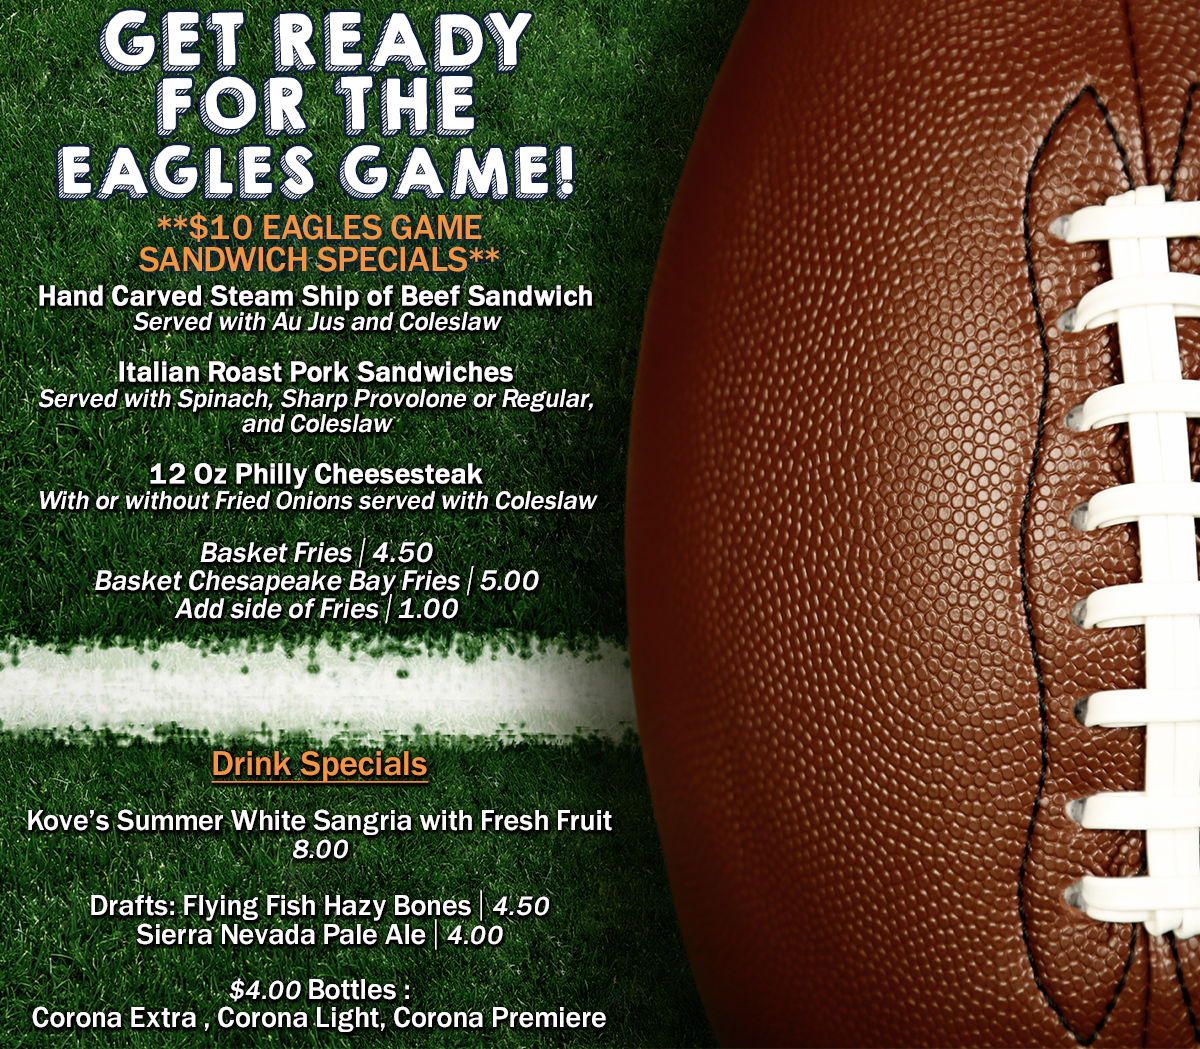 $10 Eagles Game Sandwich Specials. Hand Carved Steam Ship of Beef Sandwich Served with Au Jus and Coleslaw. Italian Roast Pork Sandwiches Served with Spinach, Sharp Provolone or Regular, and Coleslaw. 12 Oz Philly Cheesesteak With or without Fried Onions served with Coleslaw. Basket Fries, $4.50. Basket Chesapeake Bay Fries, $5. Add side of Fries, $1.00. Drink Specials Kove's Summer White Sangria with Fresh Fruit, $8. Drafts: Flying Fish Hazy Bones $4.50, Sierra Nevada Pale Ale $4. $4  Bottles : Corona Extra , Corona Light, Corona Premiere.